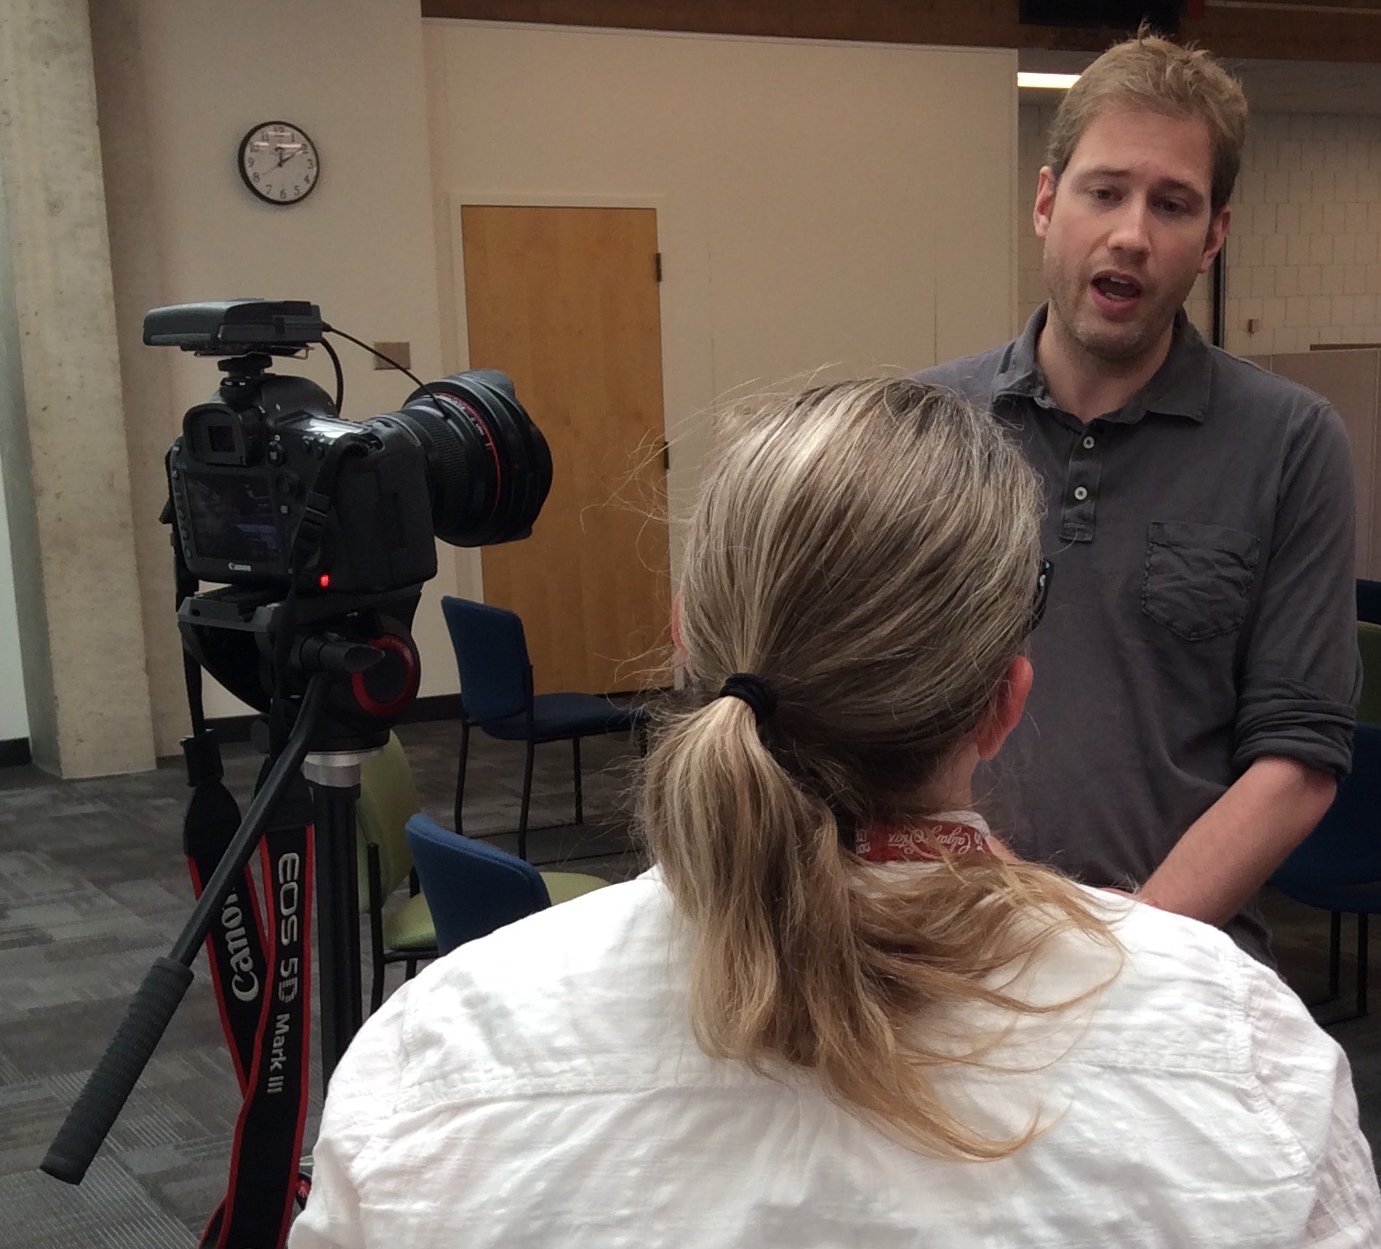 Canadian violinist Jonathan Crow meets the press, giving an interview about Morningside Music Bridge.